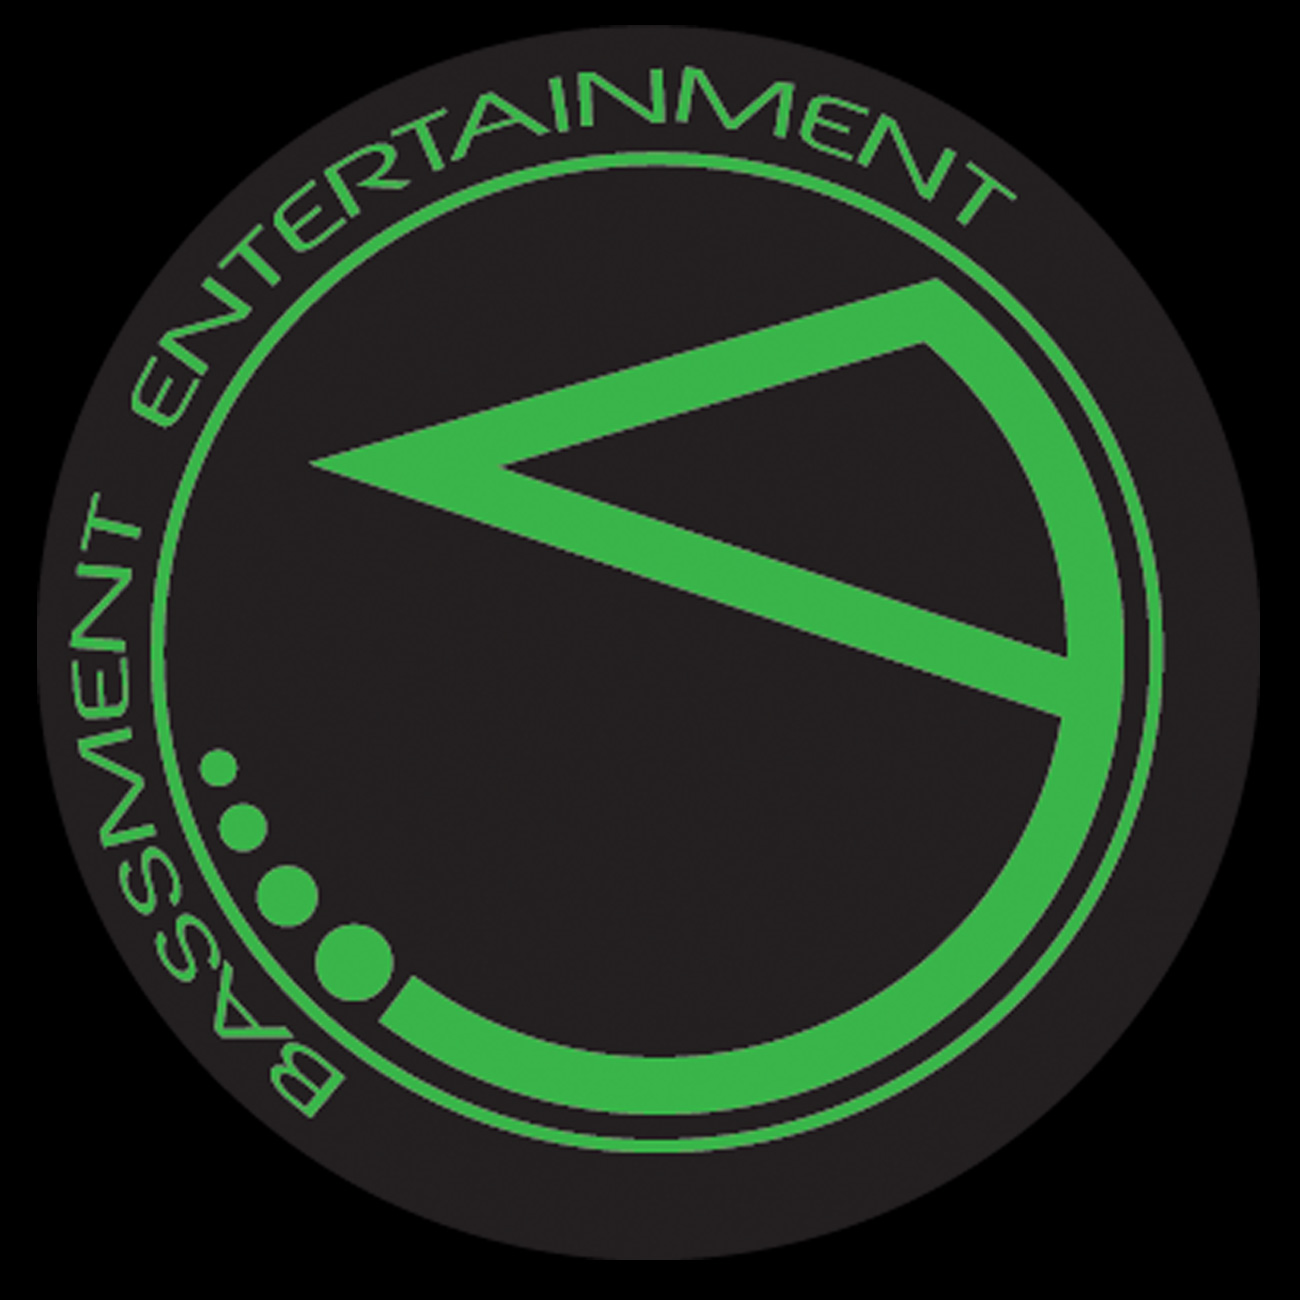 BassmentEntertainment